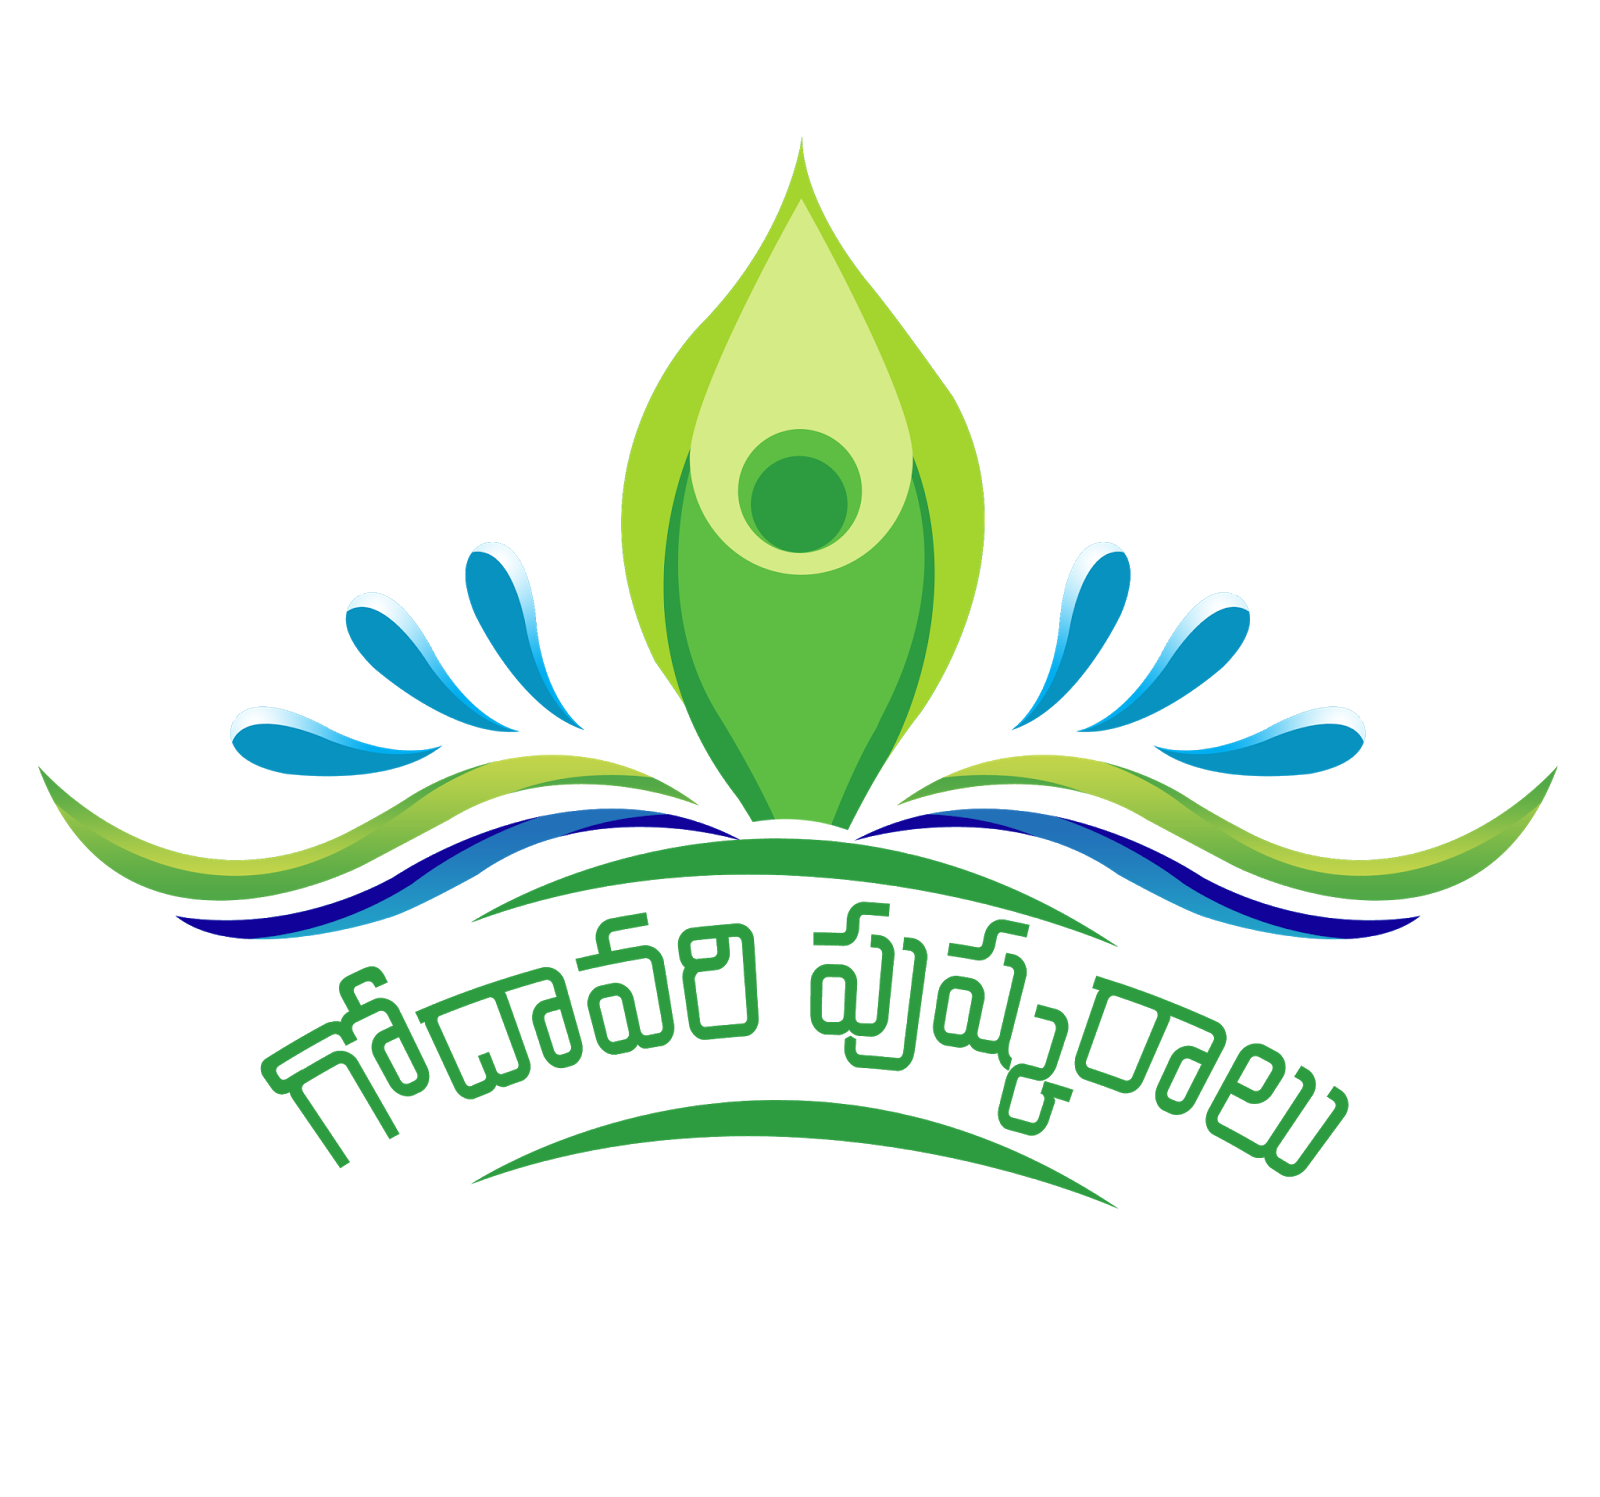 Vector psd file. Godavari pushkaralu logo design